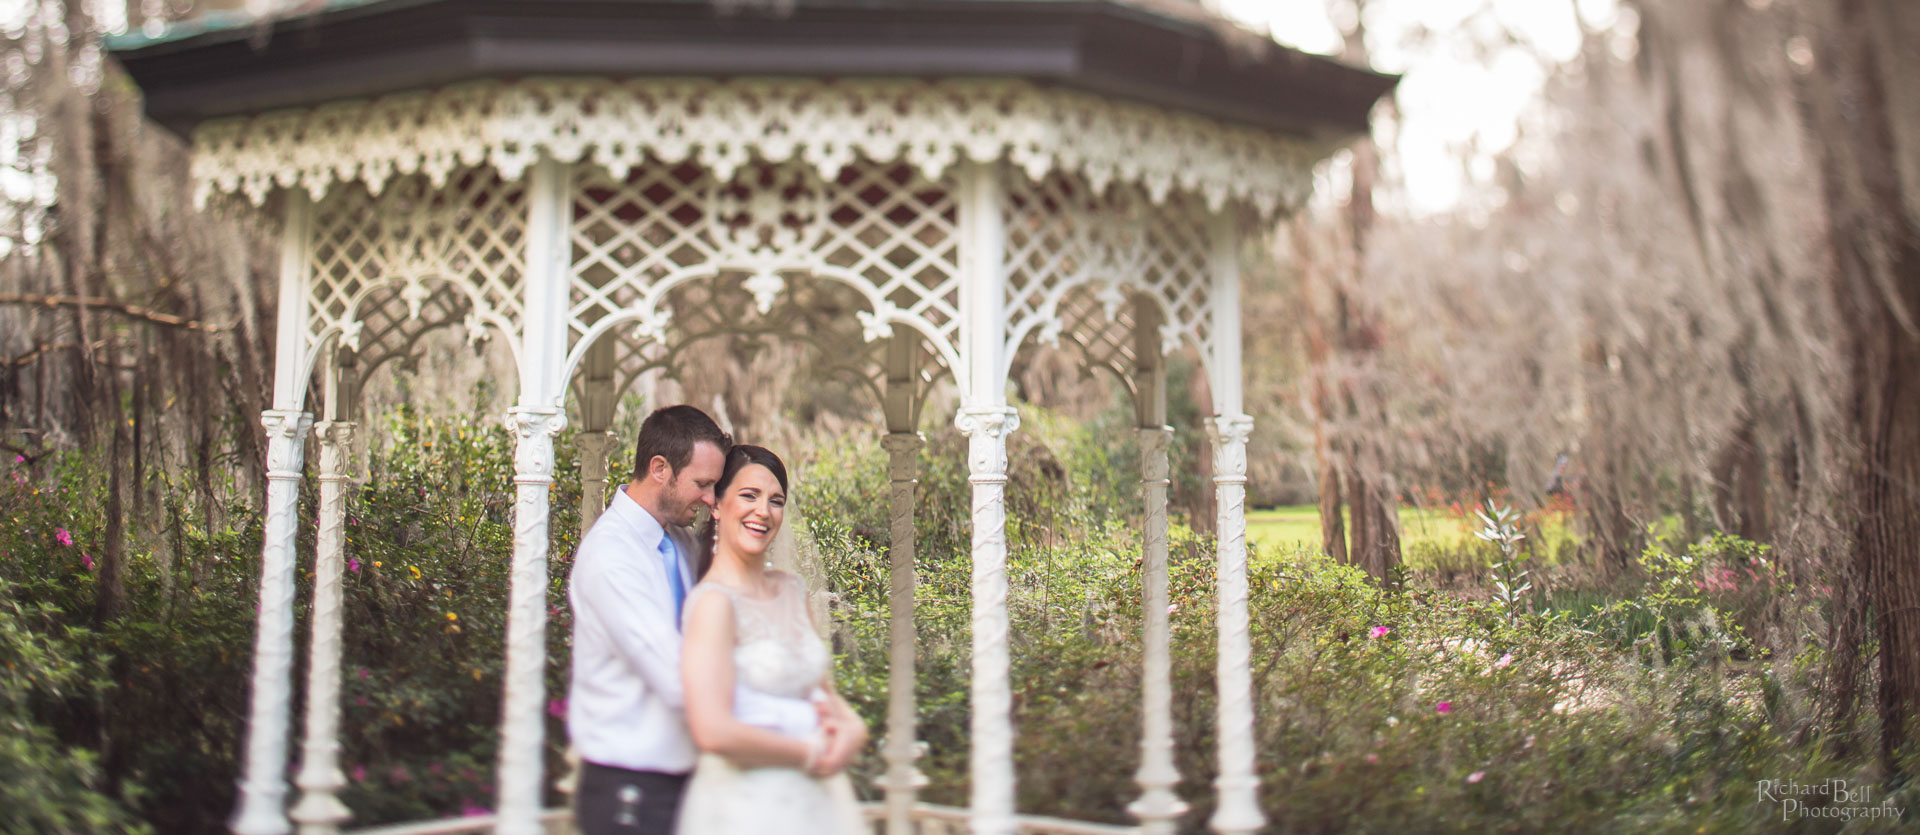 Bride and Groom in Gazebo